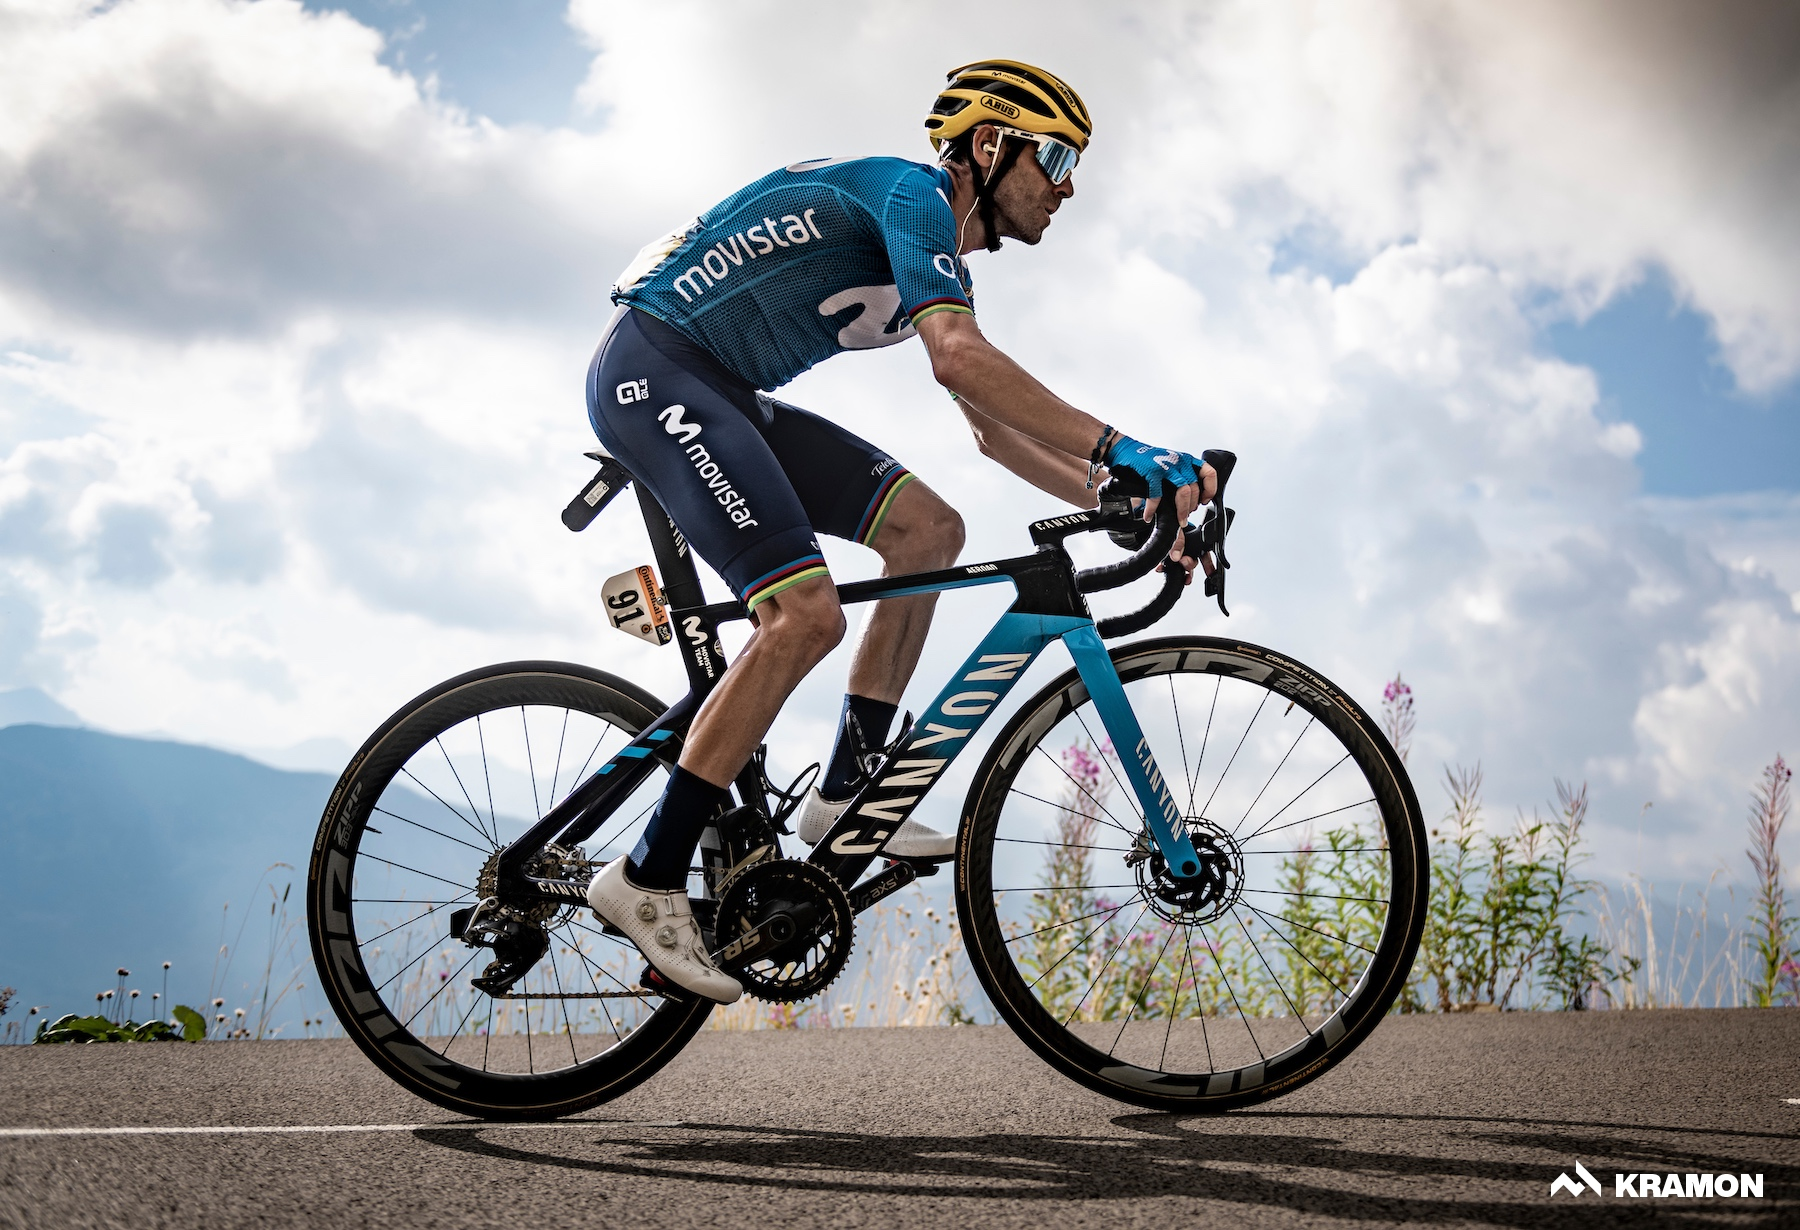 Alejandro Valverde confirms that he plans to retire at the end of 2021